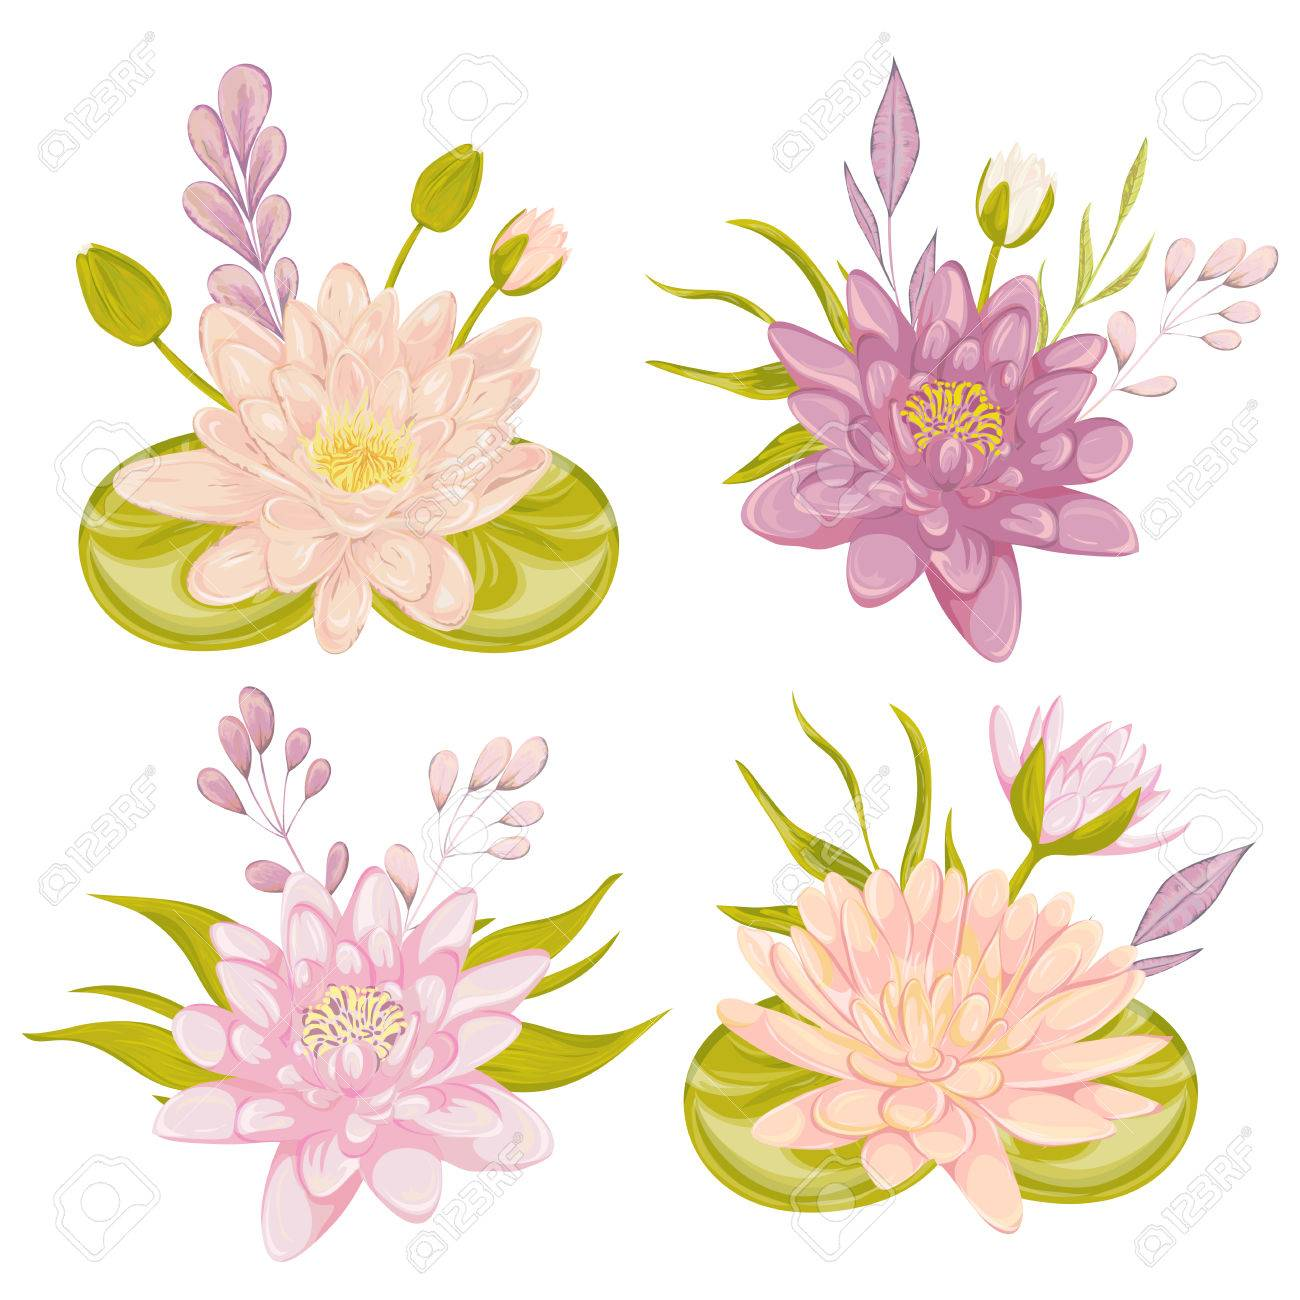 Water lily set collection decorative floral design elements collection decorative floral design elements for wedding invitations and birthday cards flowers leaves and buds vintage hand drawn vector illustration in izmirmasajfo